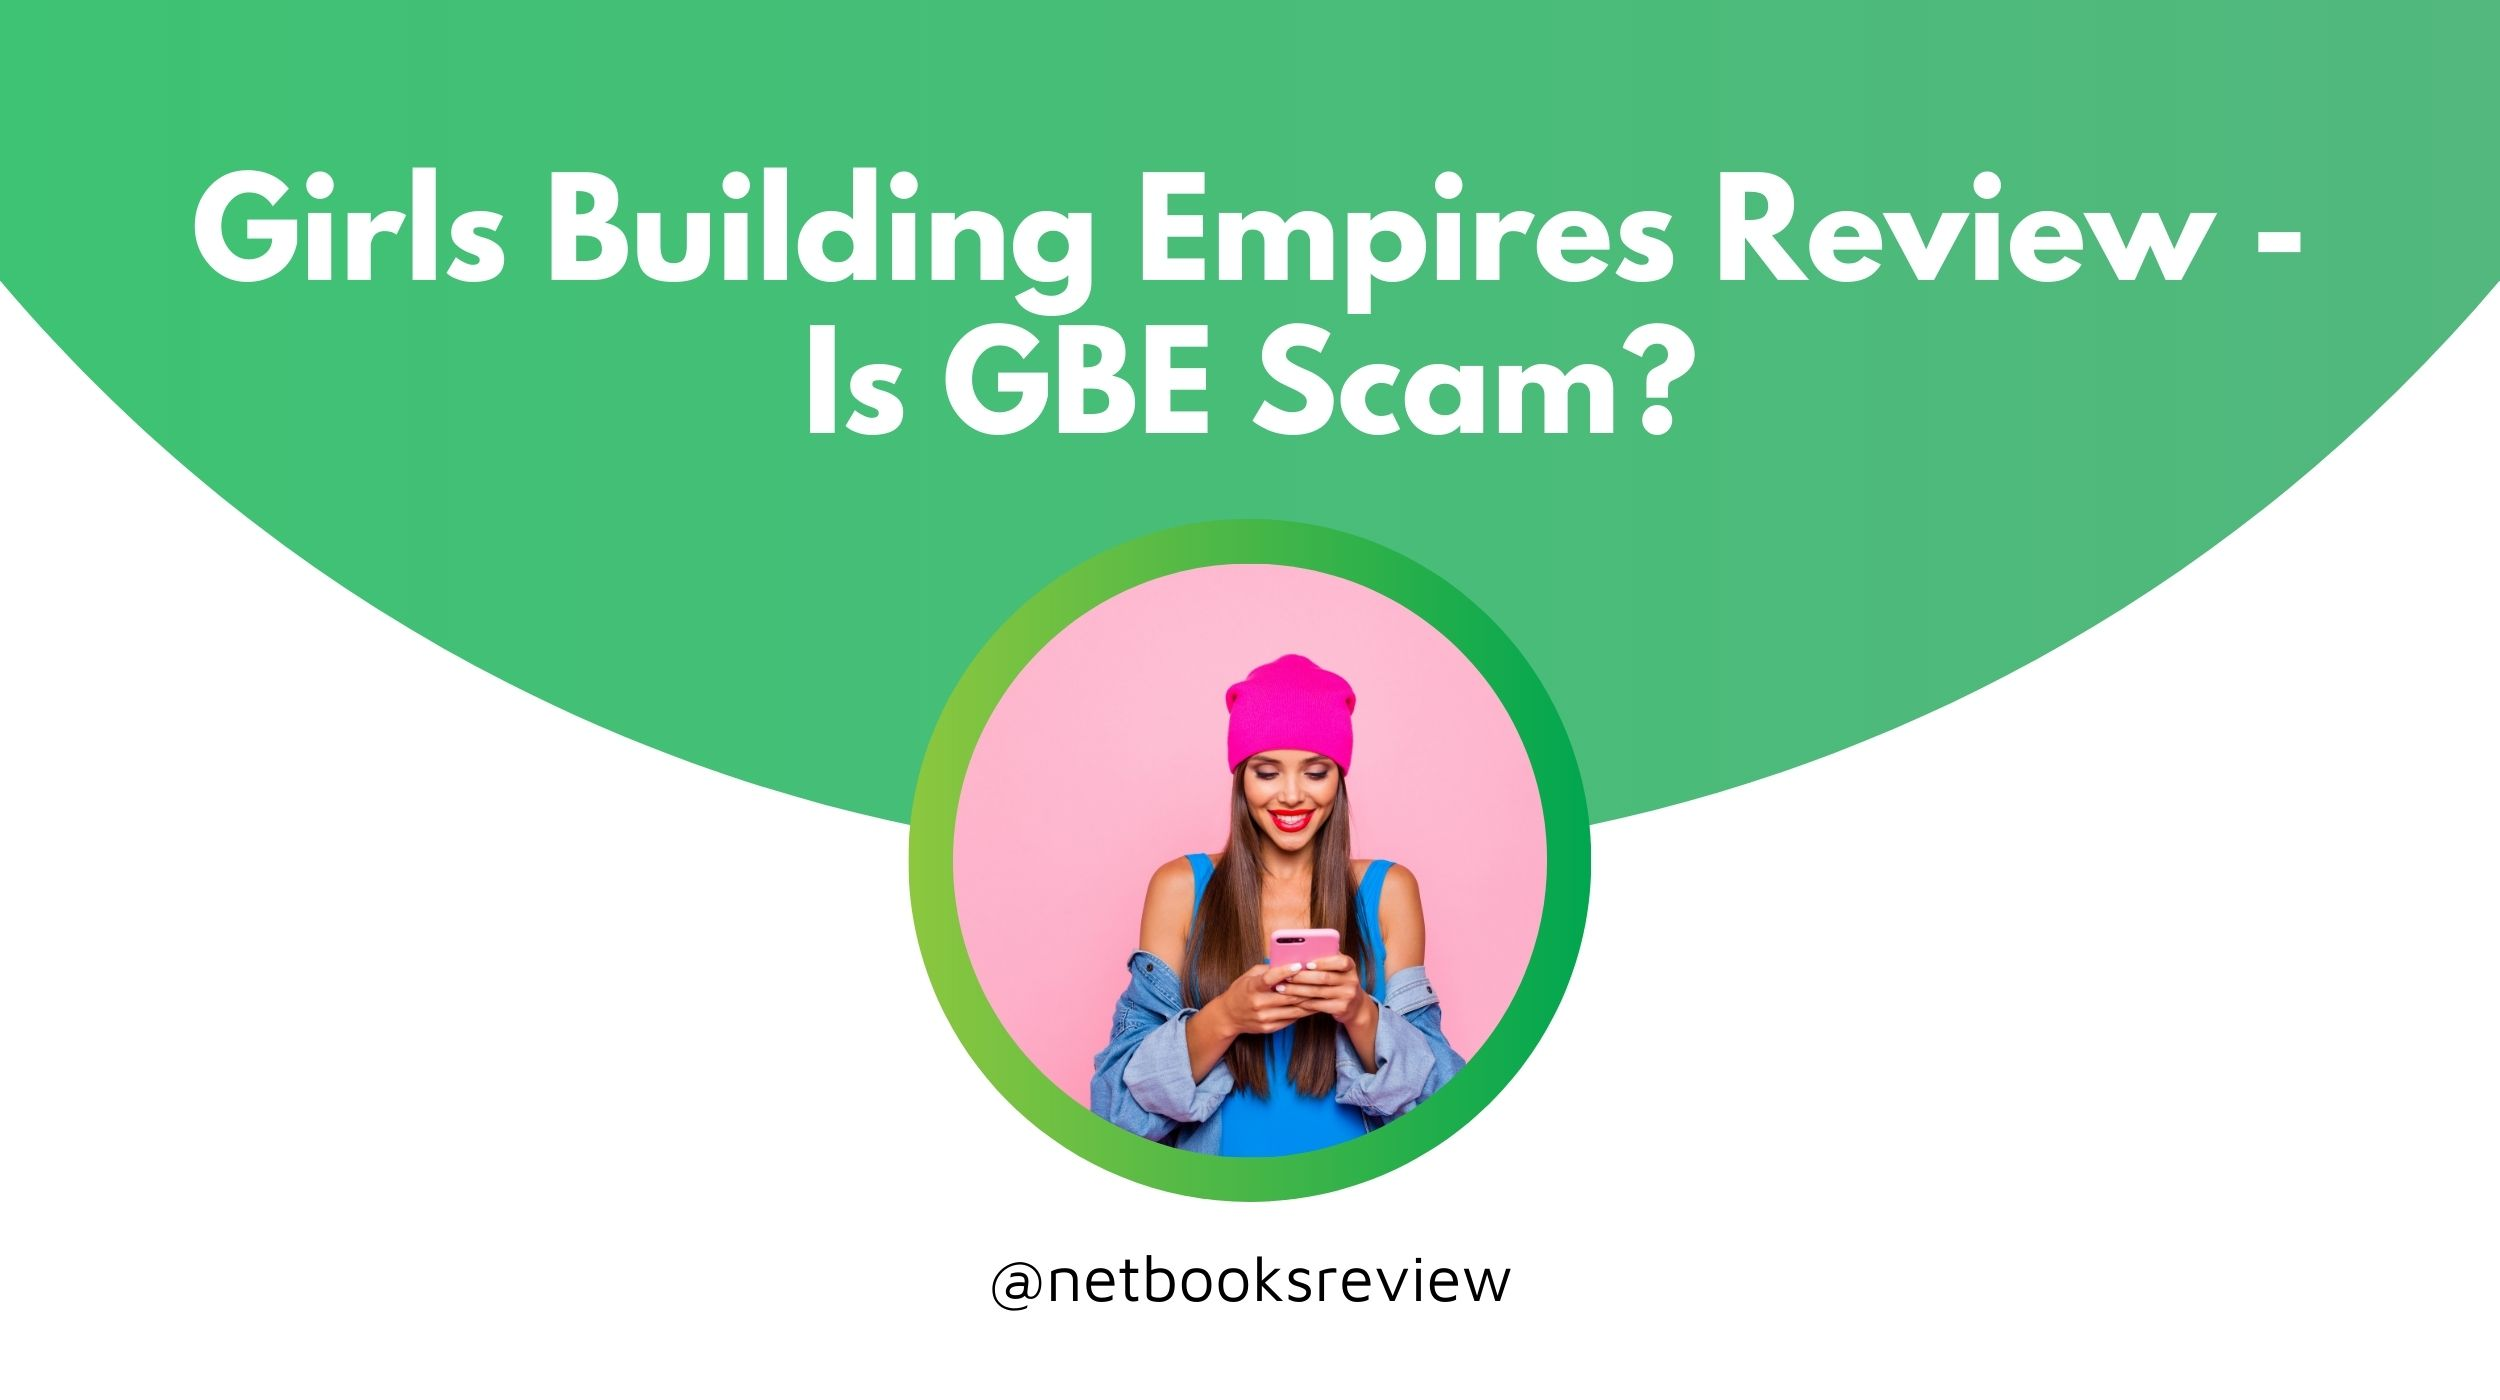 GBE Scam